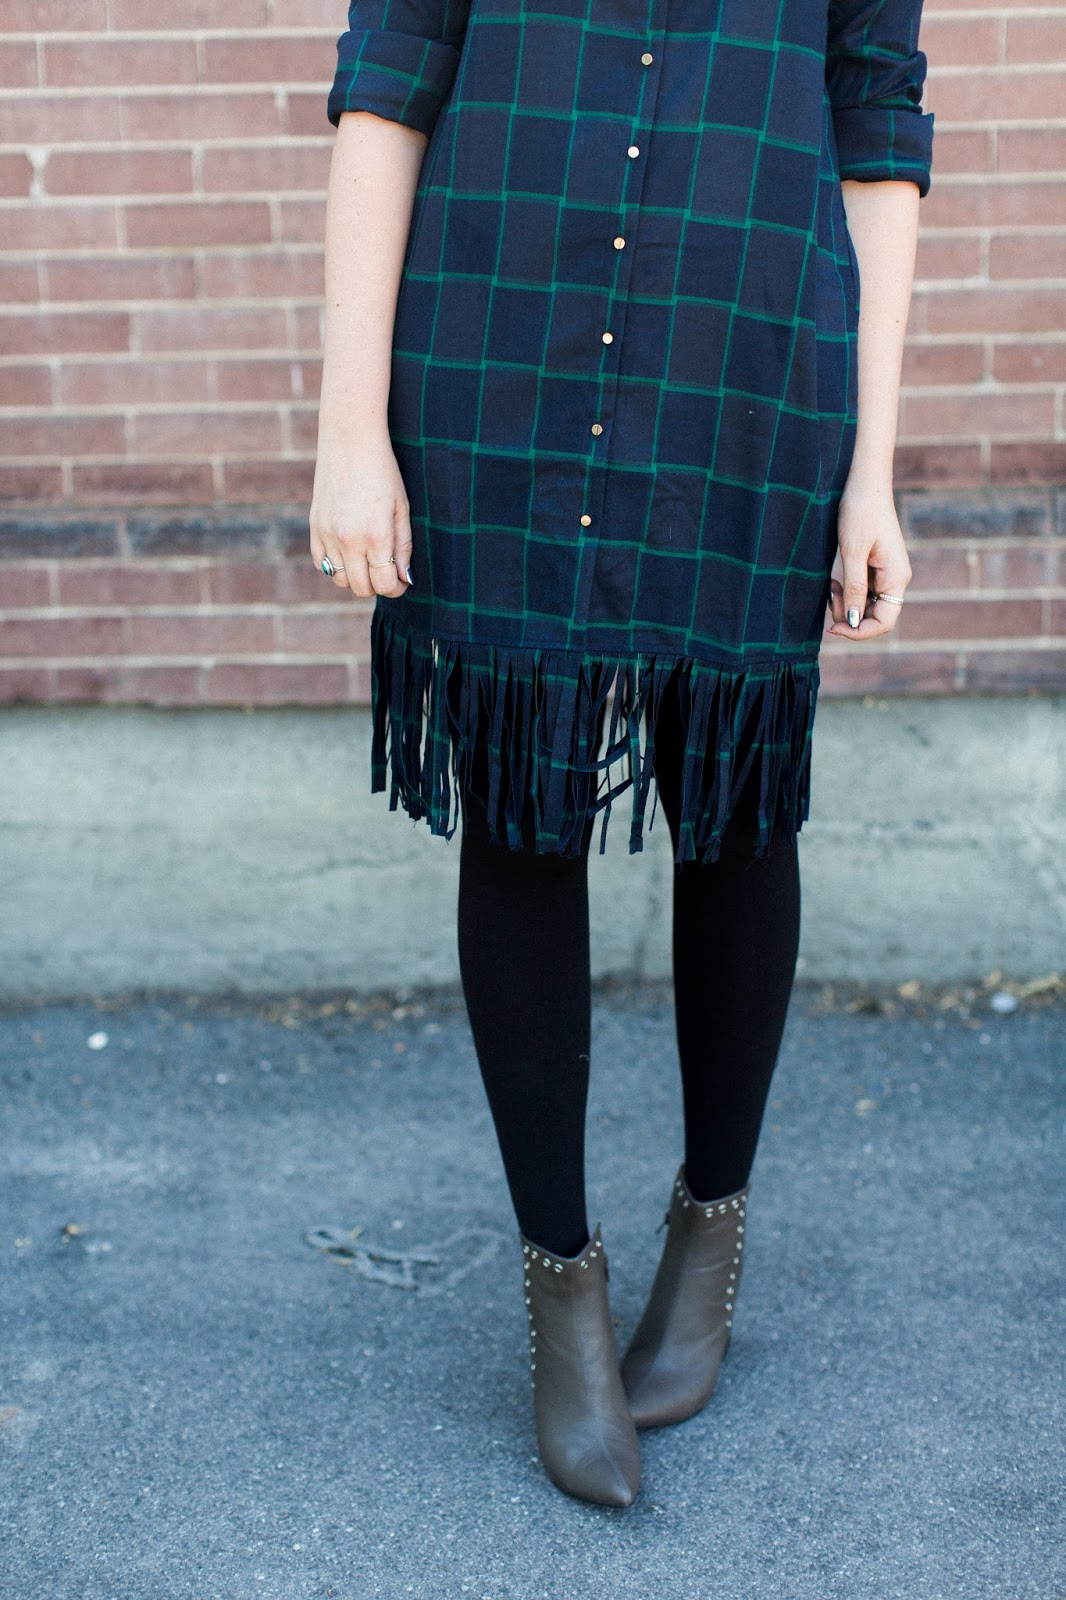 Fringe dress, Plaid Dress, Modest Outfit